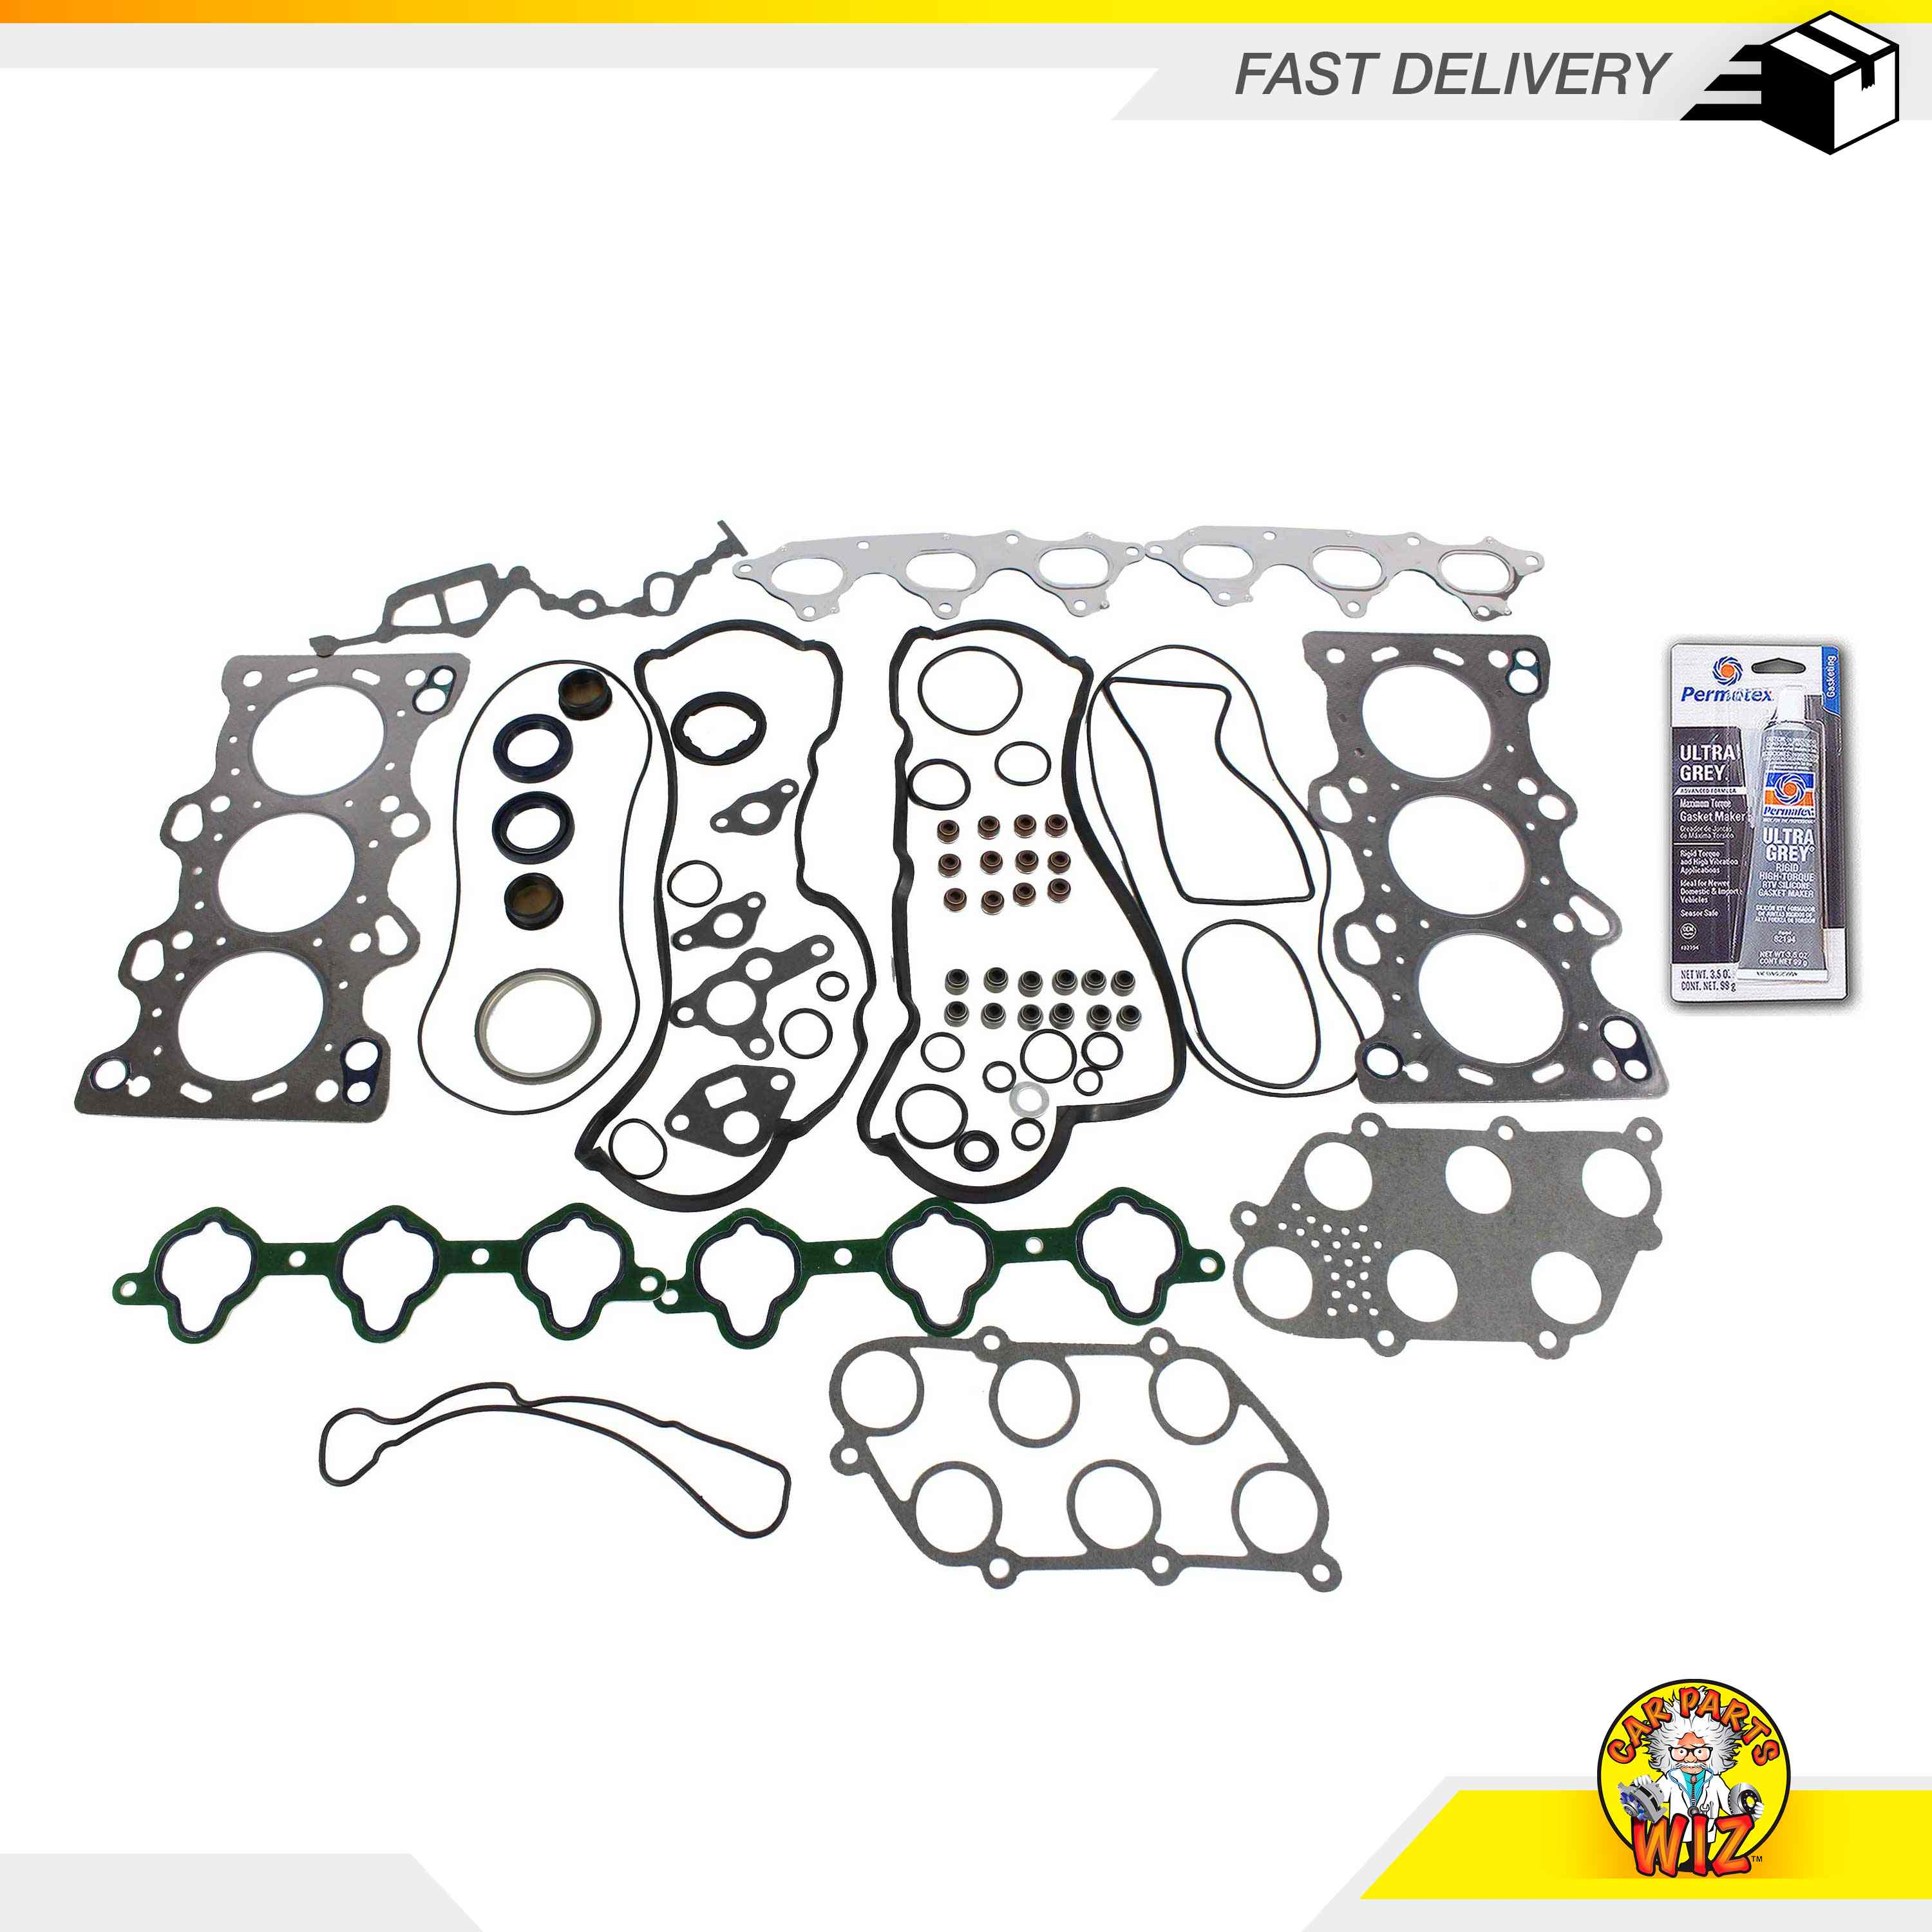 Graphite Head Gasket Set Fits 86-88 Acura Sterling 825